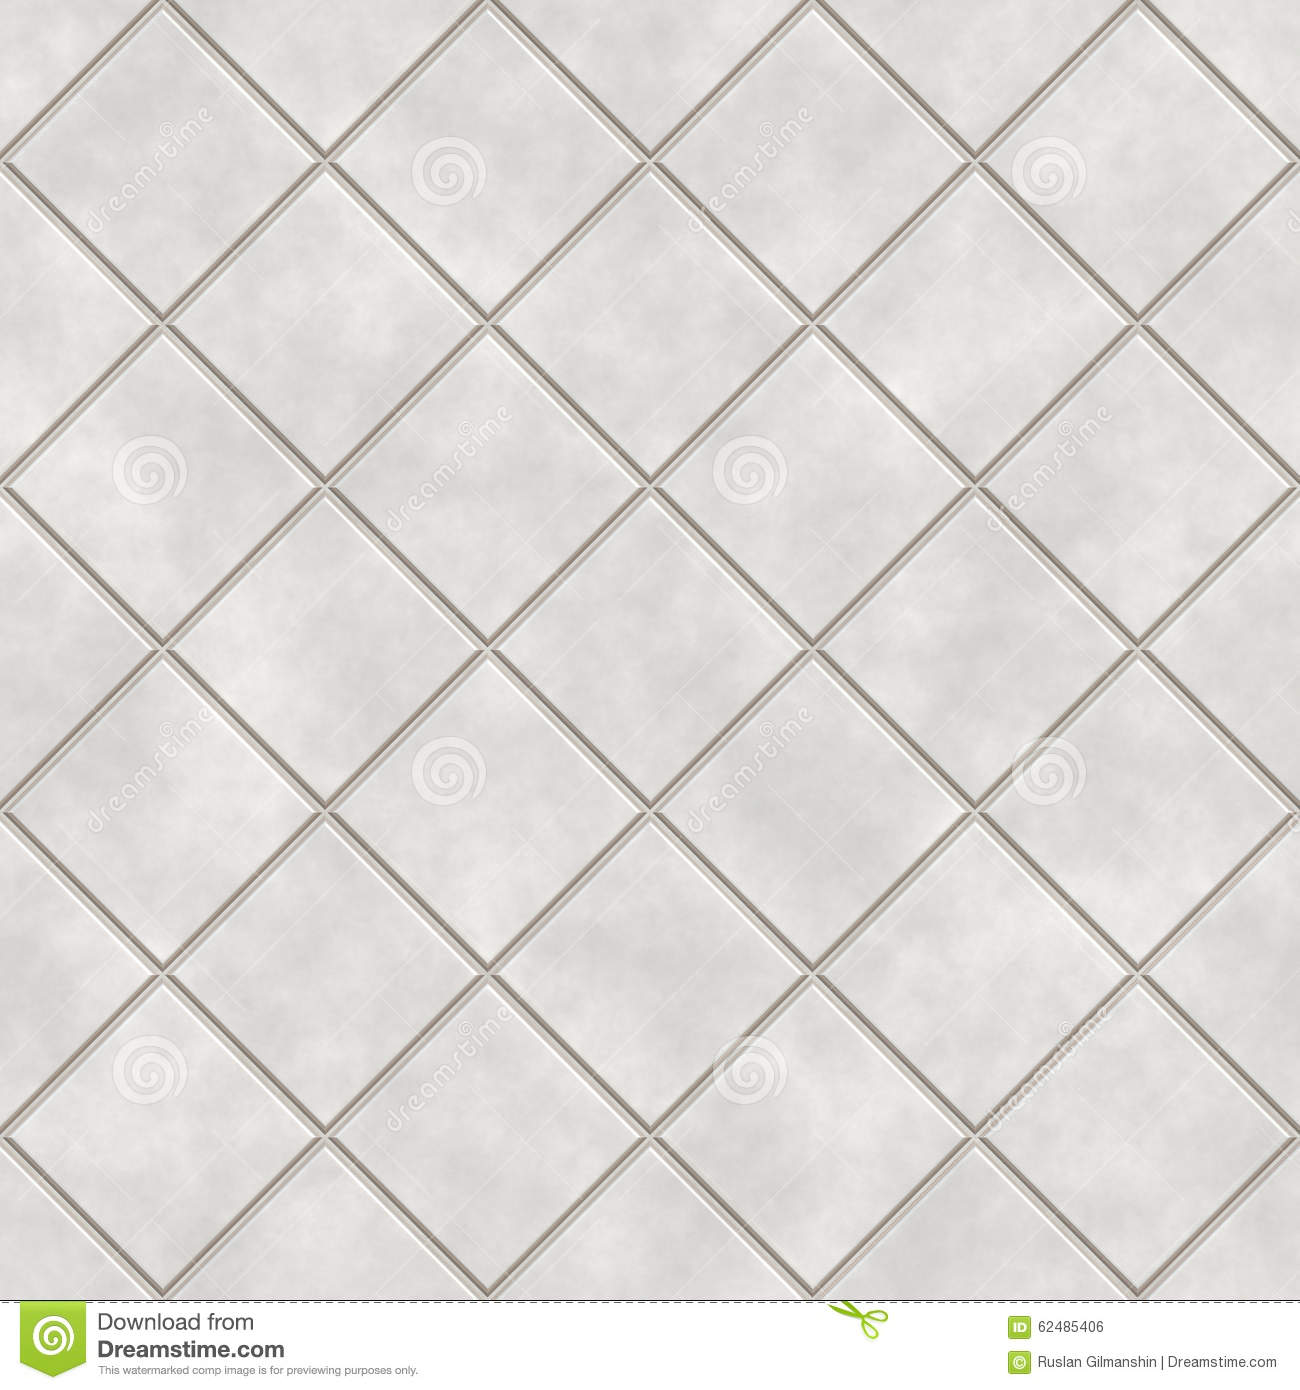 Ceramic tile seamless texture stock photography for Ceramic patterns designs